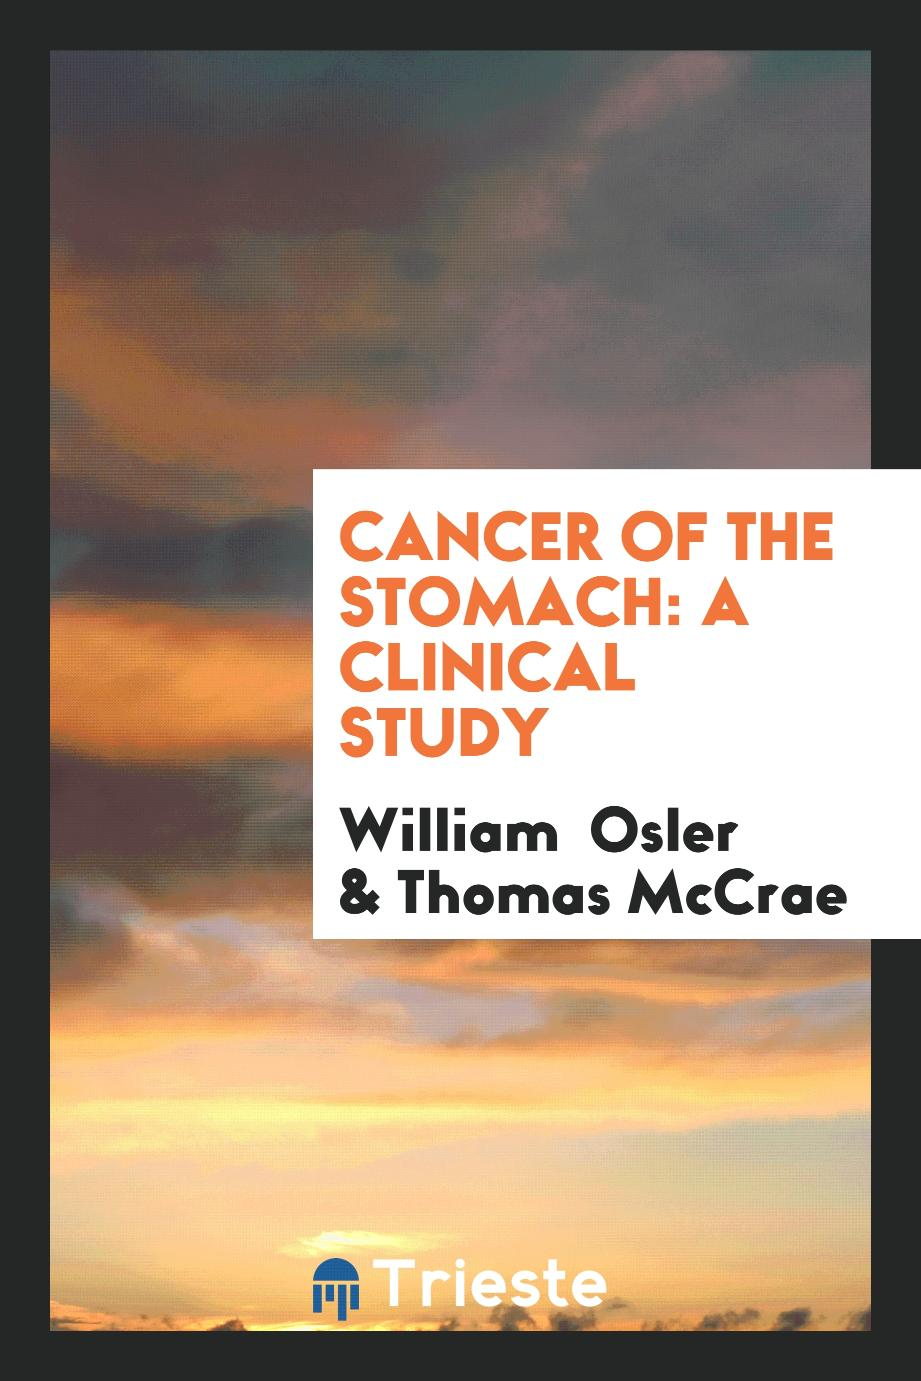 Cancer of the Stomach: A Clinical Study